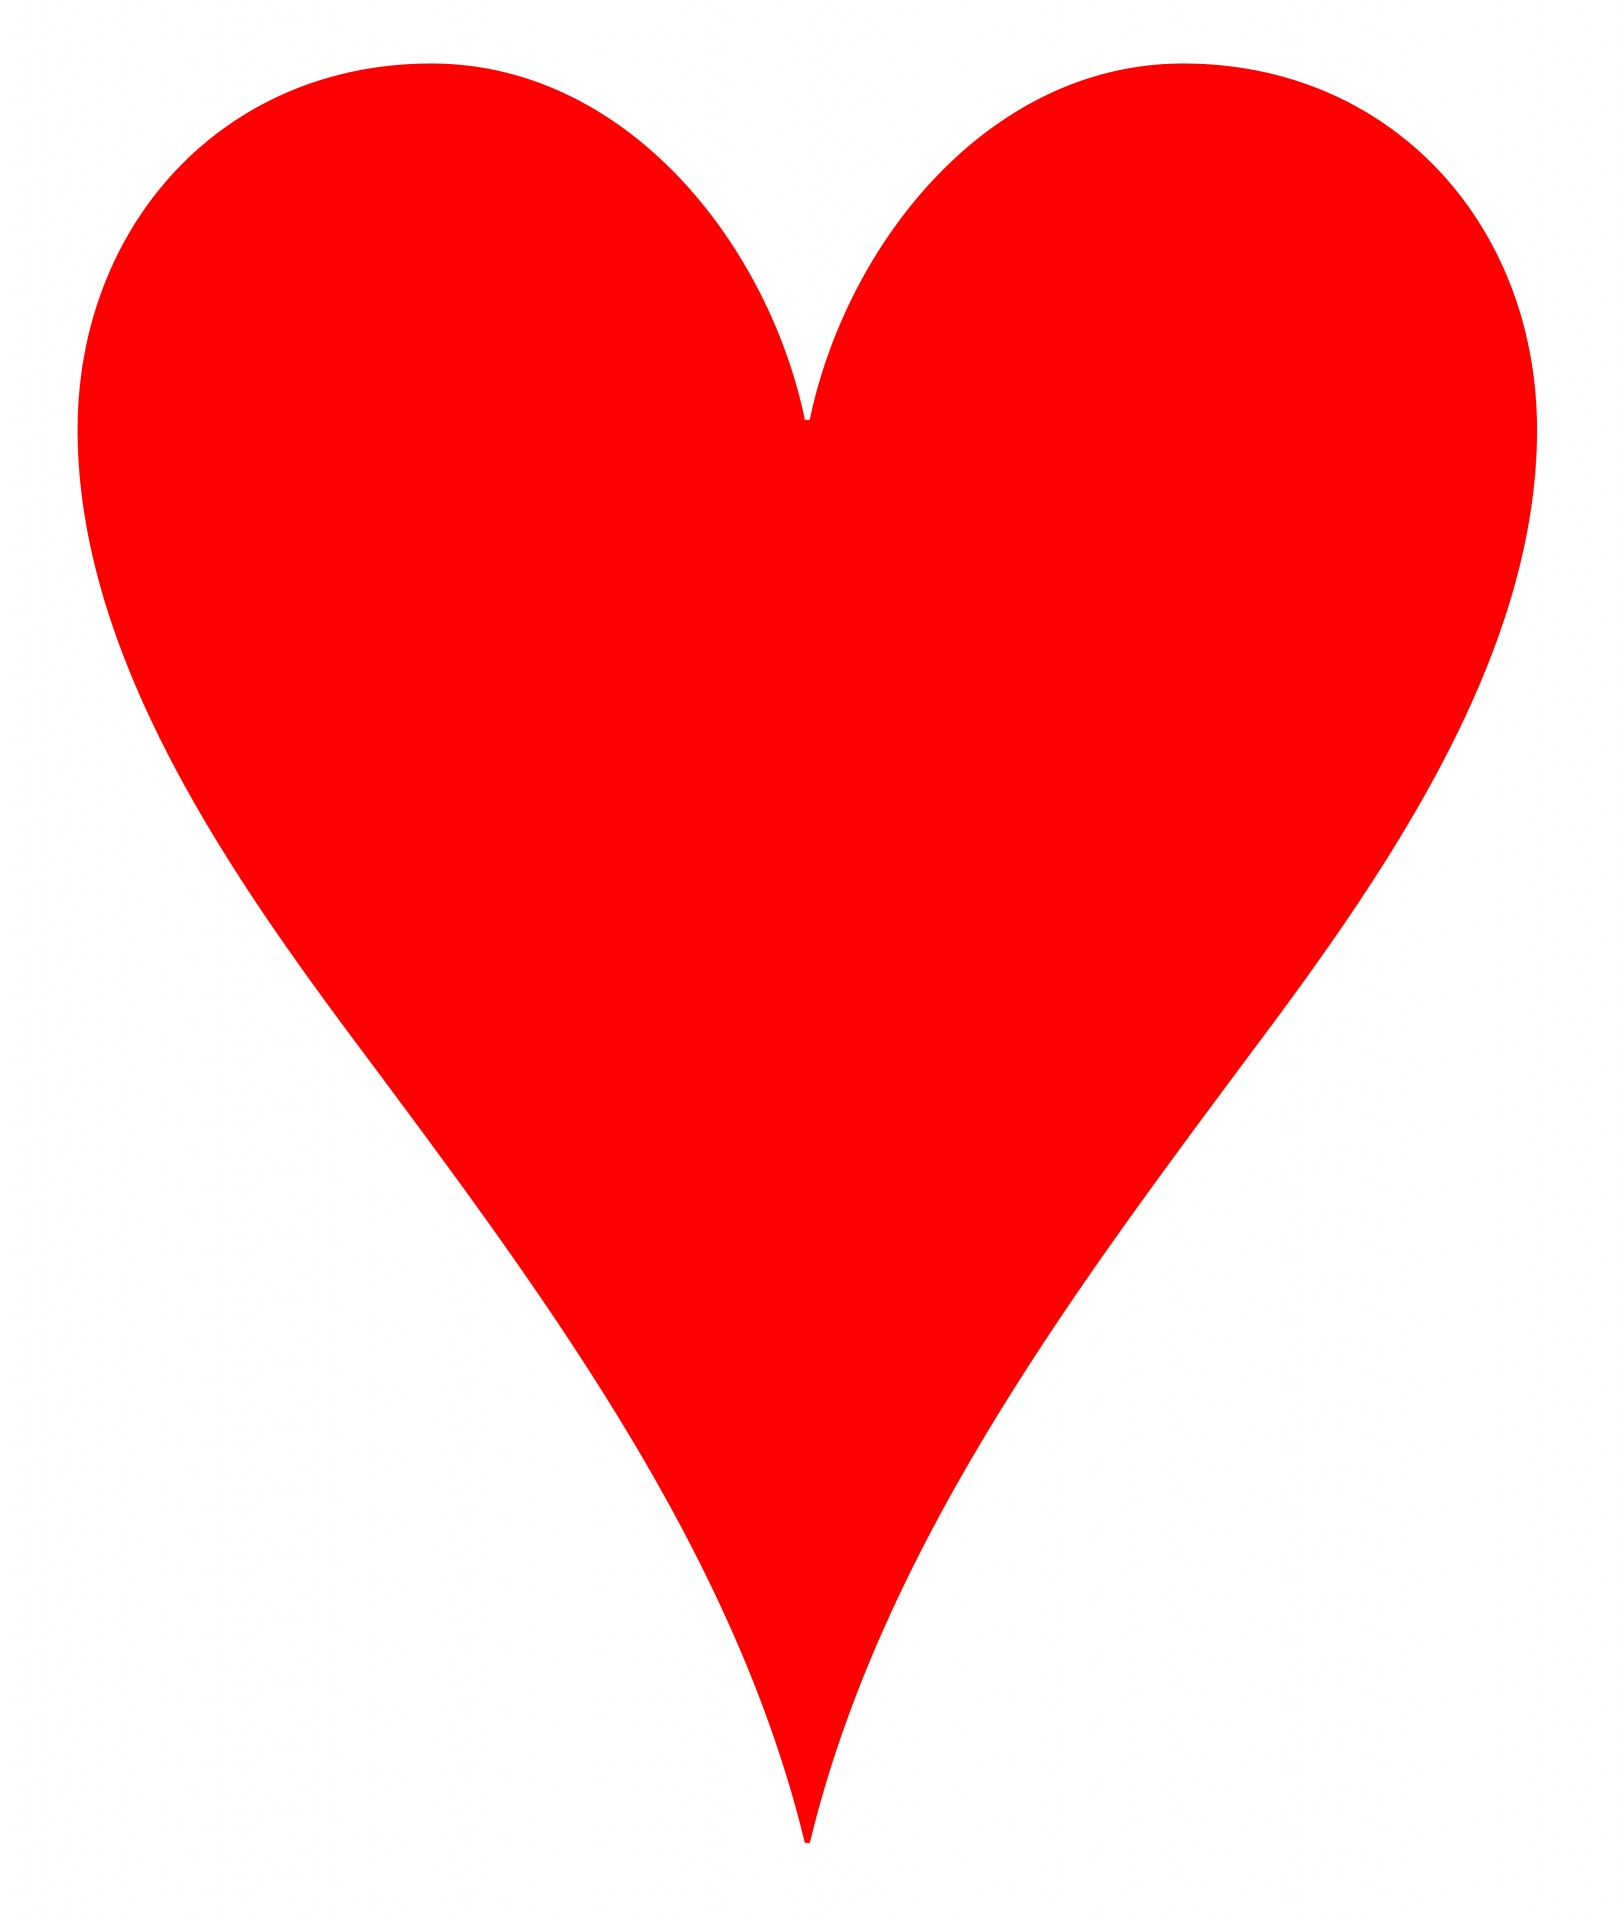 Red Heart Clipart Free Stock Photo.